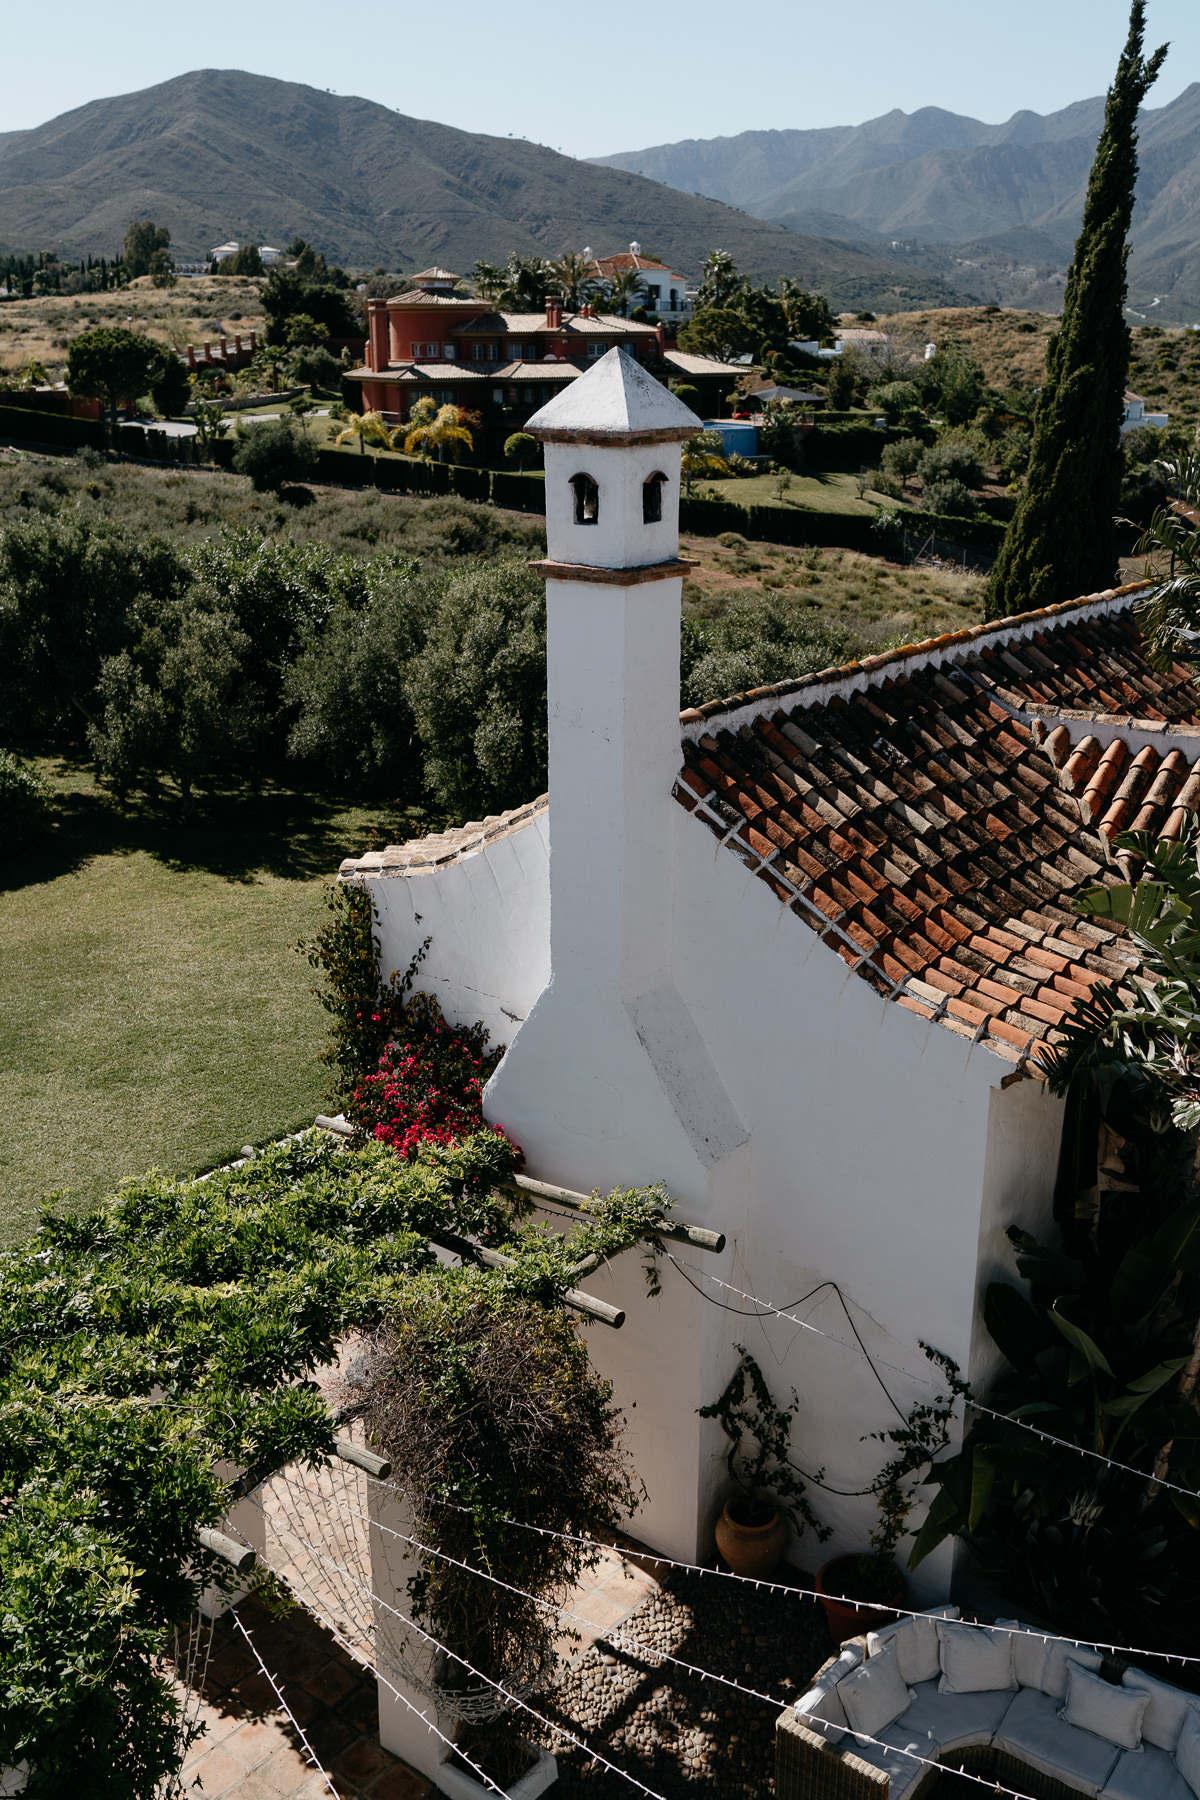 Hacienda san jose mijas wedding venue